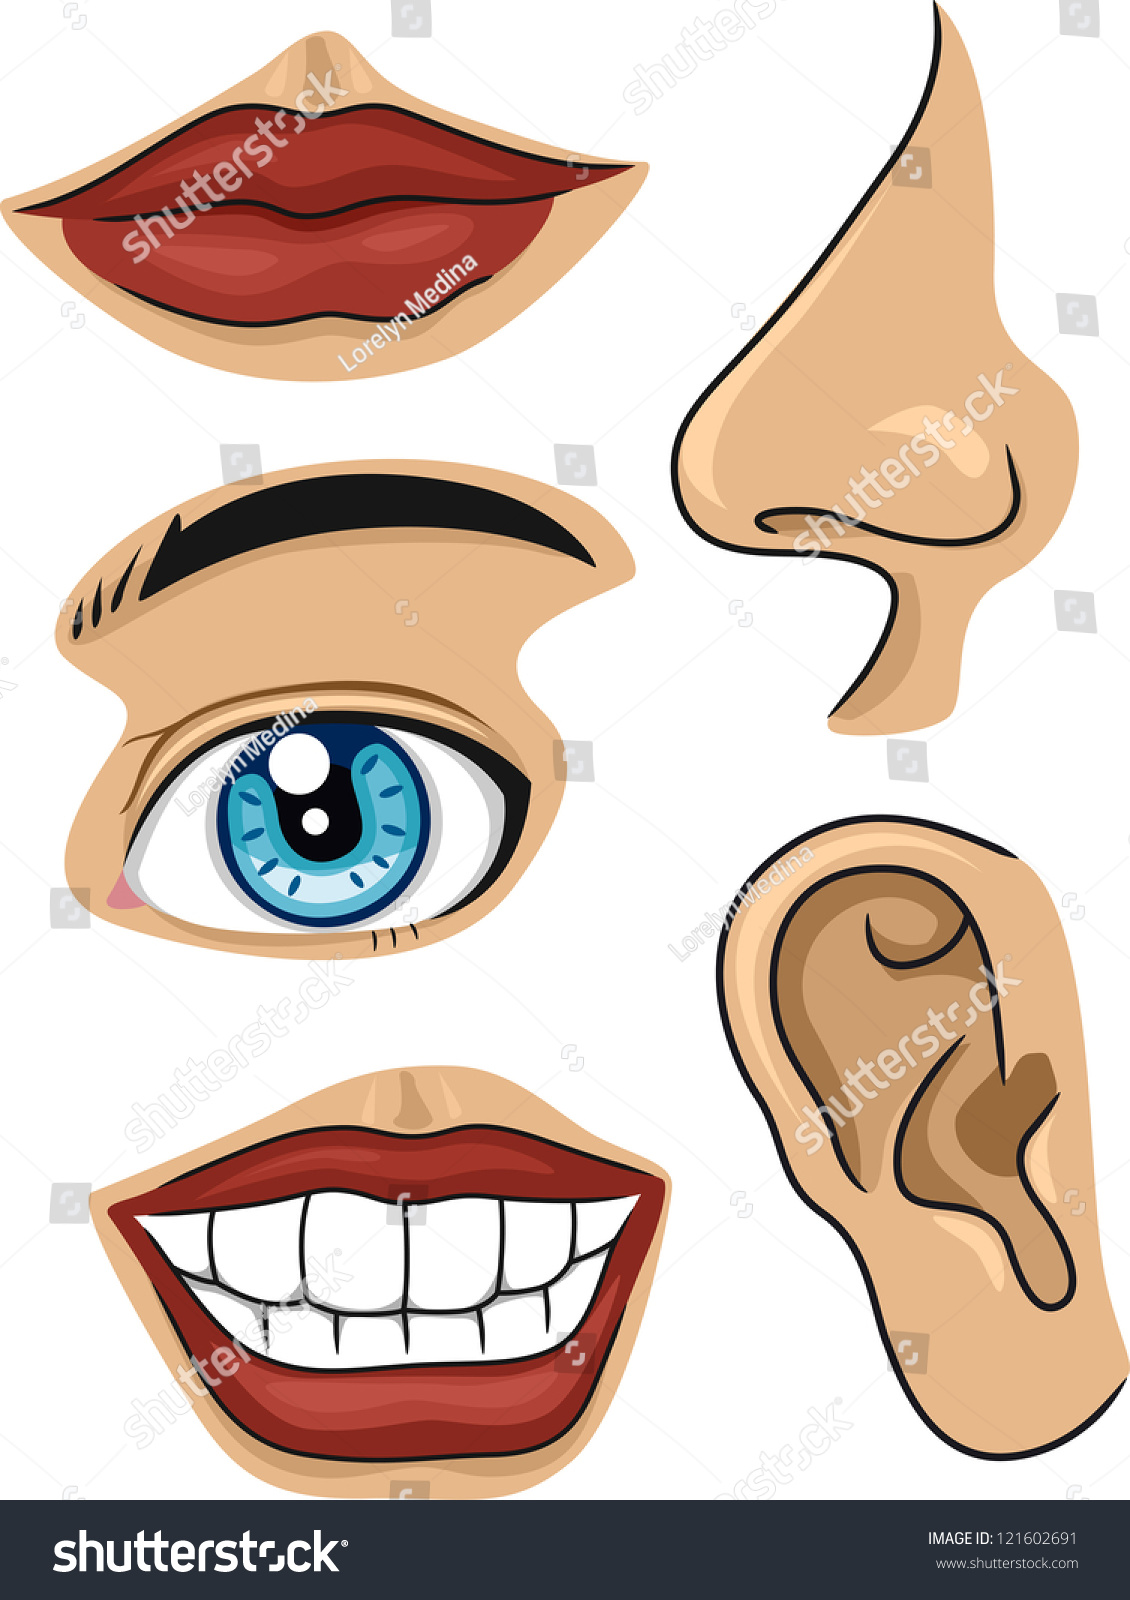 Illustration different parts face stock vector 121602691 shutterstock - Clipart visage ...